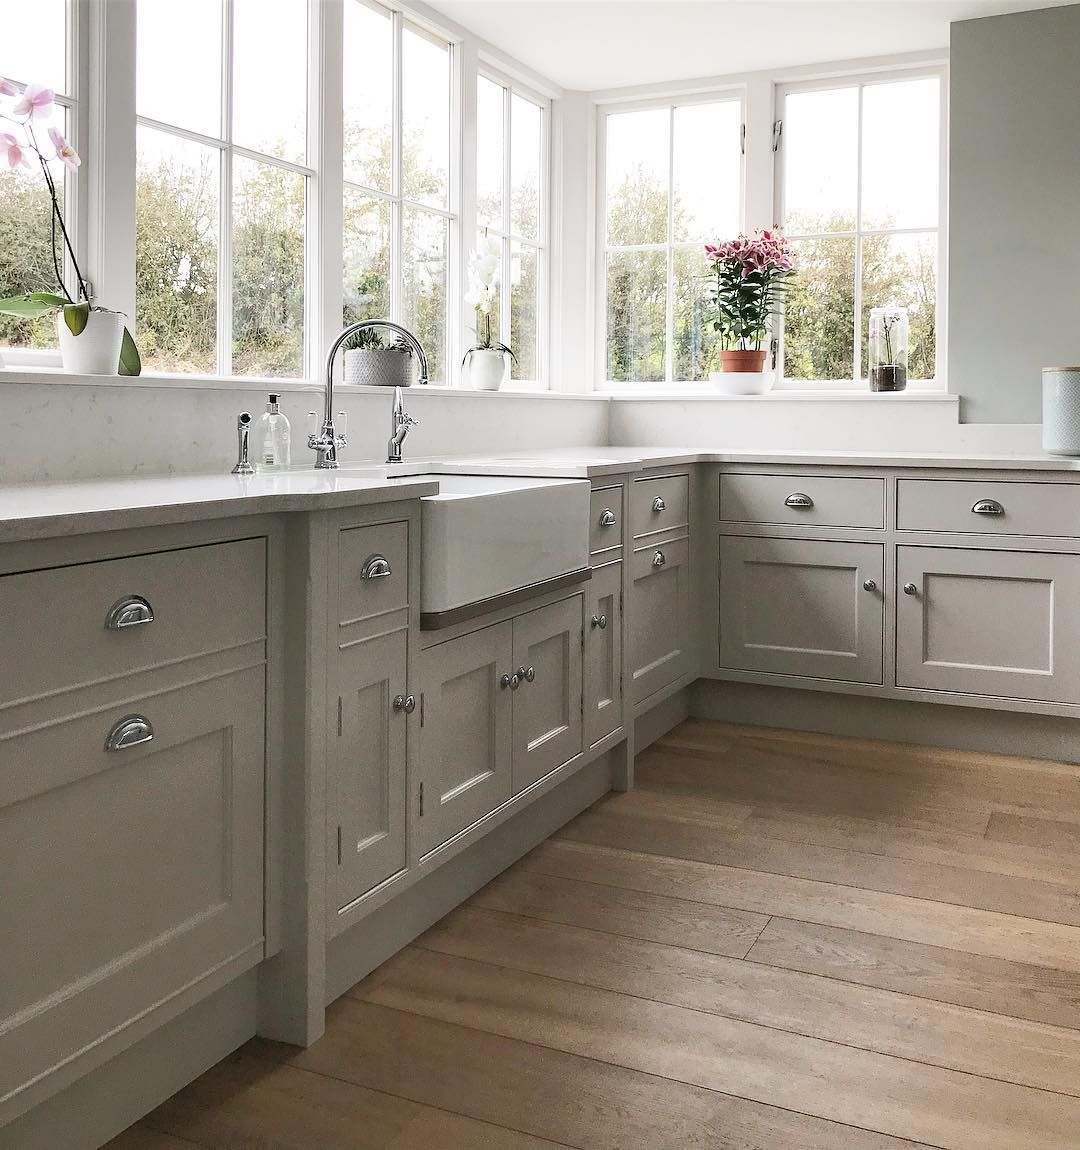 Heywood And Robinson Interiors On Instagram Handcrafted Kitchen Cabinetry By Heywood And Robinson A Real Statement Of Luxury Our A Kitchen Cabinetry Kitchen